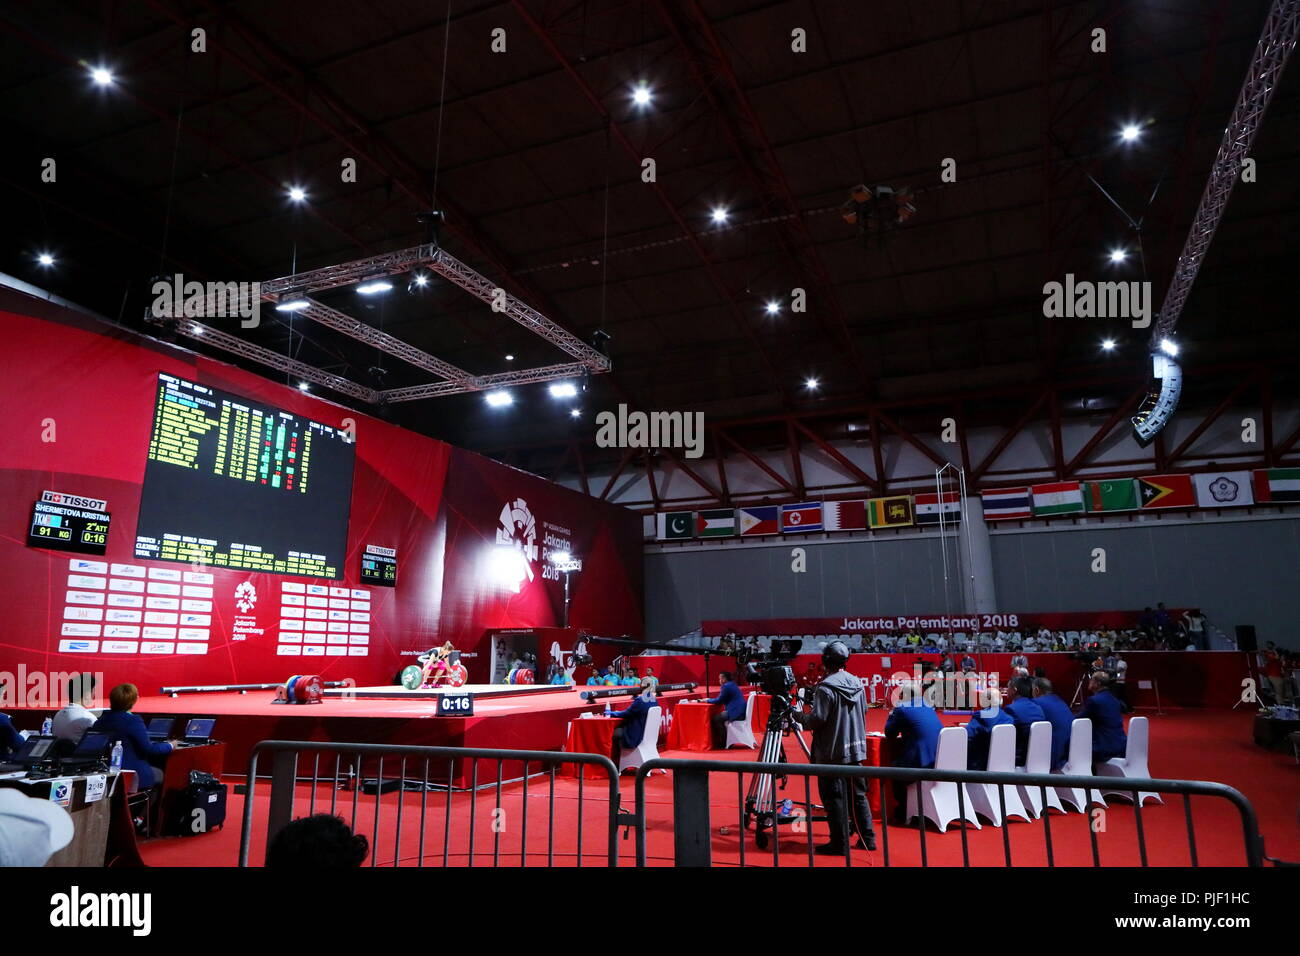 St Aug  General View Weightlifting At Jiexpo Kemayoran Hall A During The  Jakarta Palembang Asian Games In Jakarta Indonesia